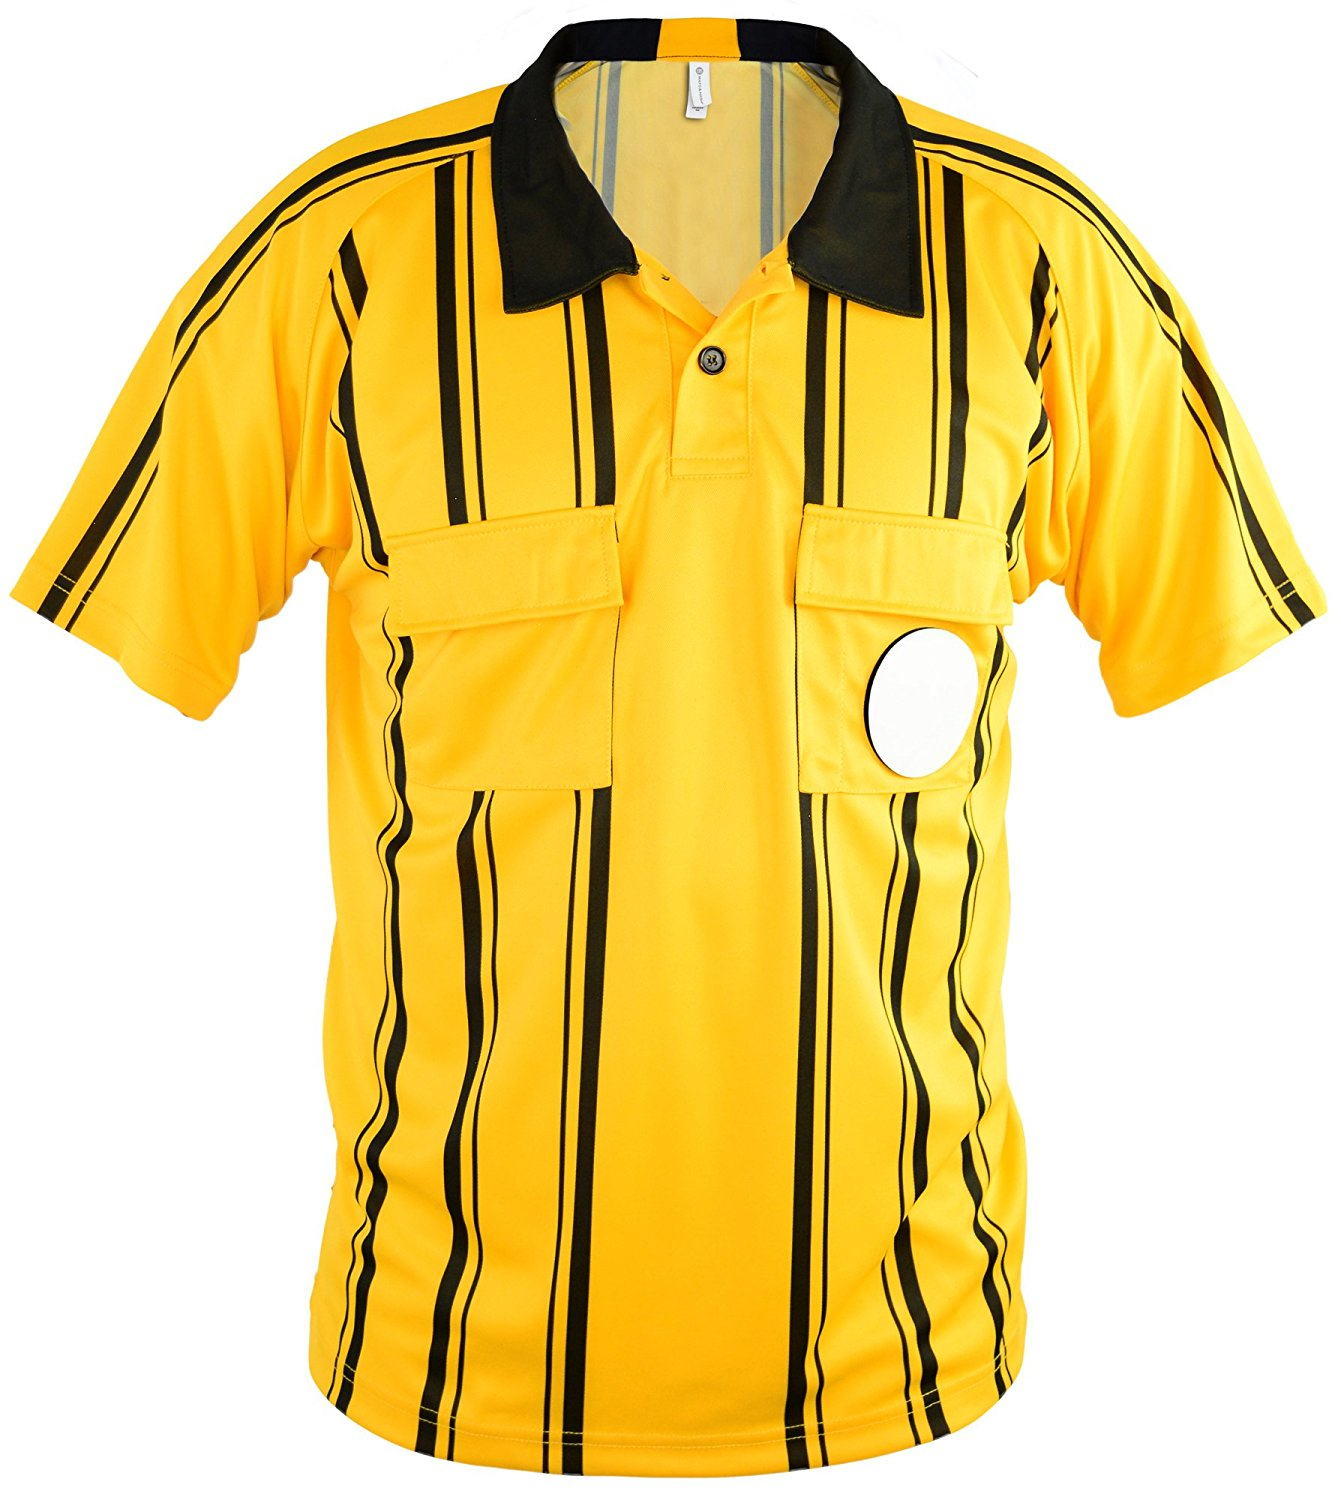 Soccer Referee Jersey - for Soccer Referee Uniforms - By Mato   Hash -  Yellow CA2300 2XL - Walmart.com 4c44d1096